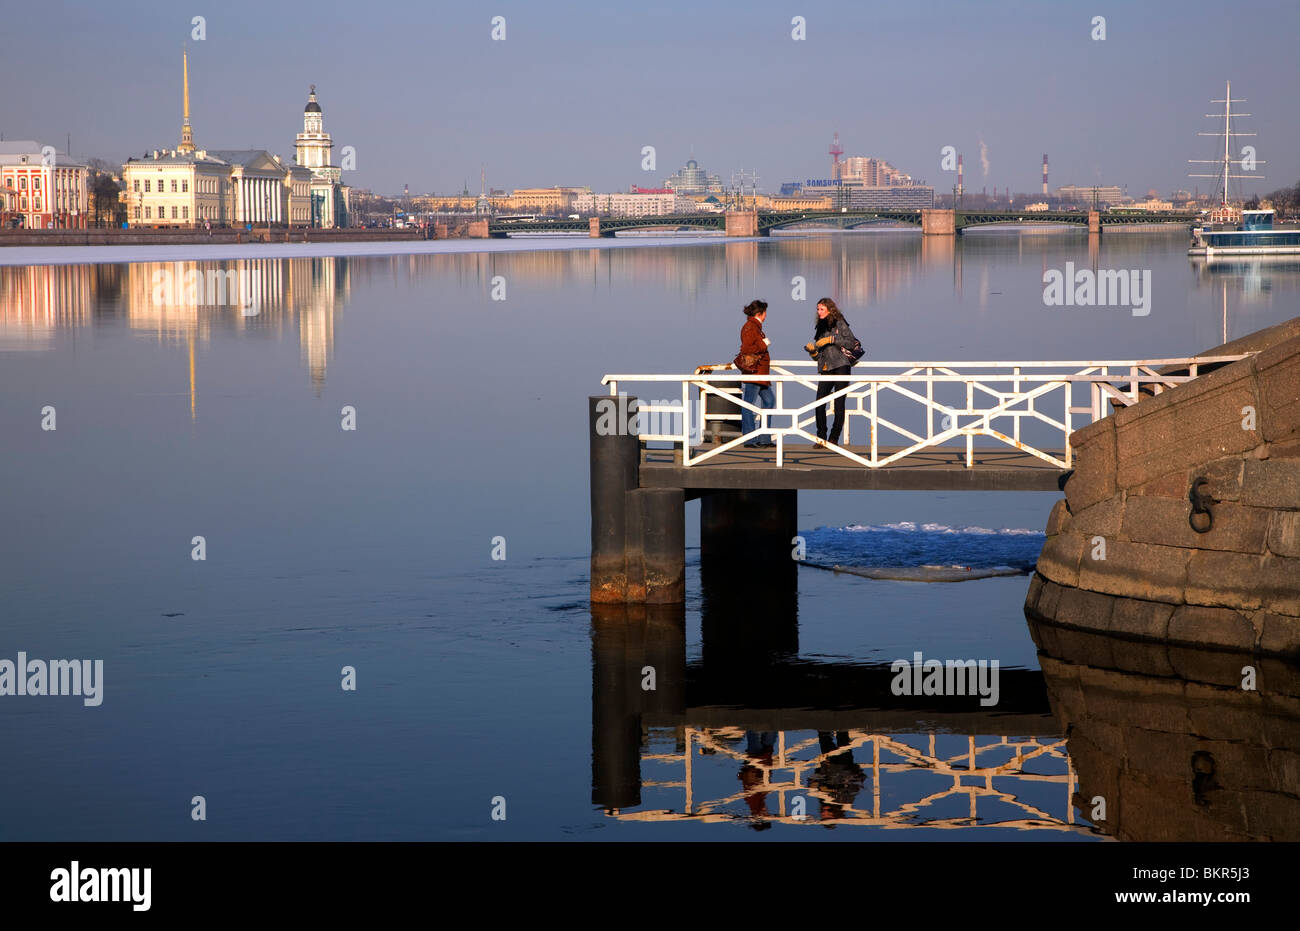 Russia, St.Petersburg; Two girls speaking on a bridge reflected on the Neva River with the Kunstkamera in the background - Stock Image